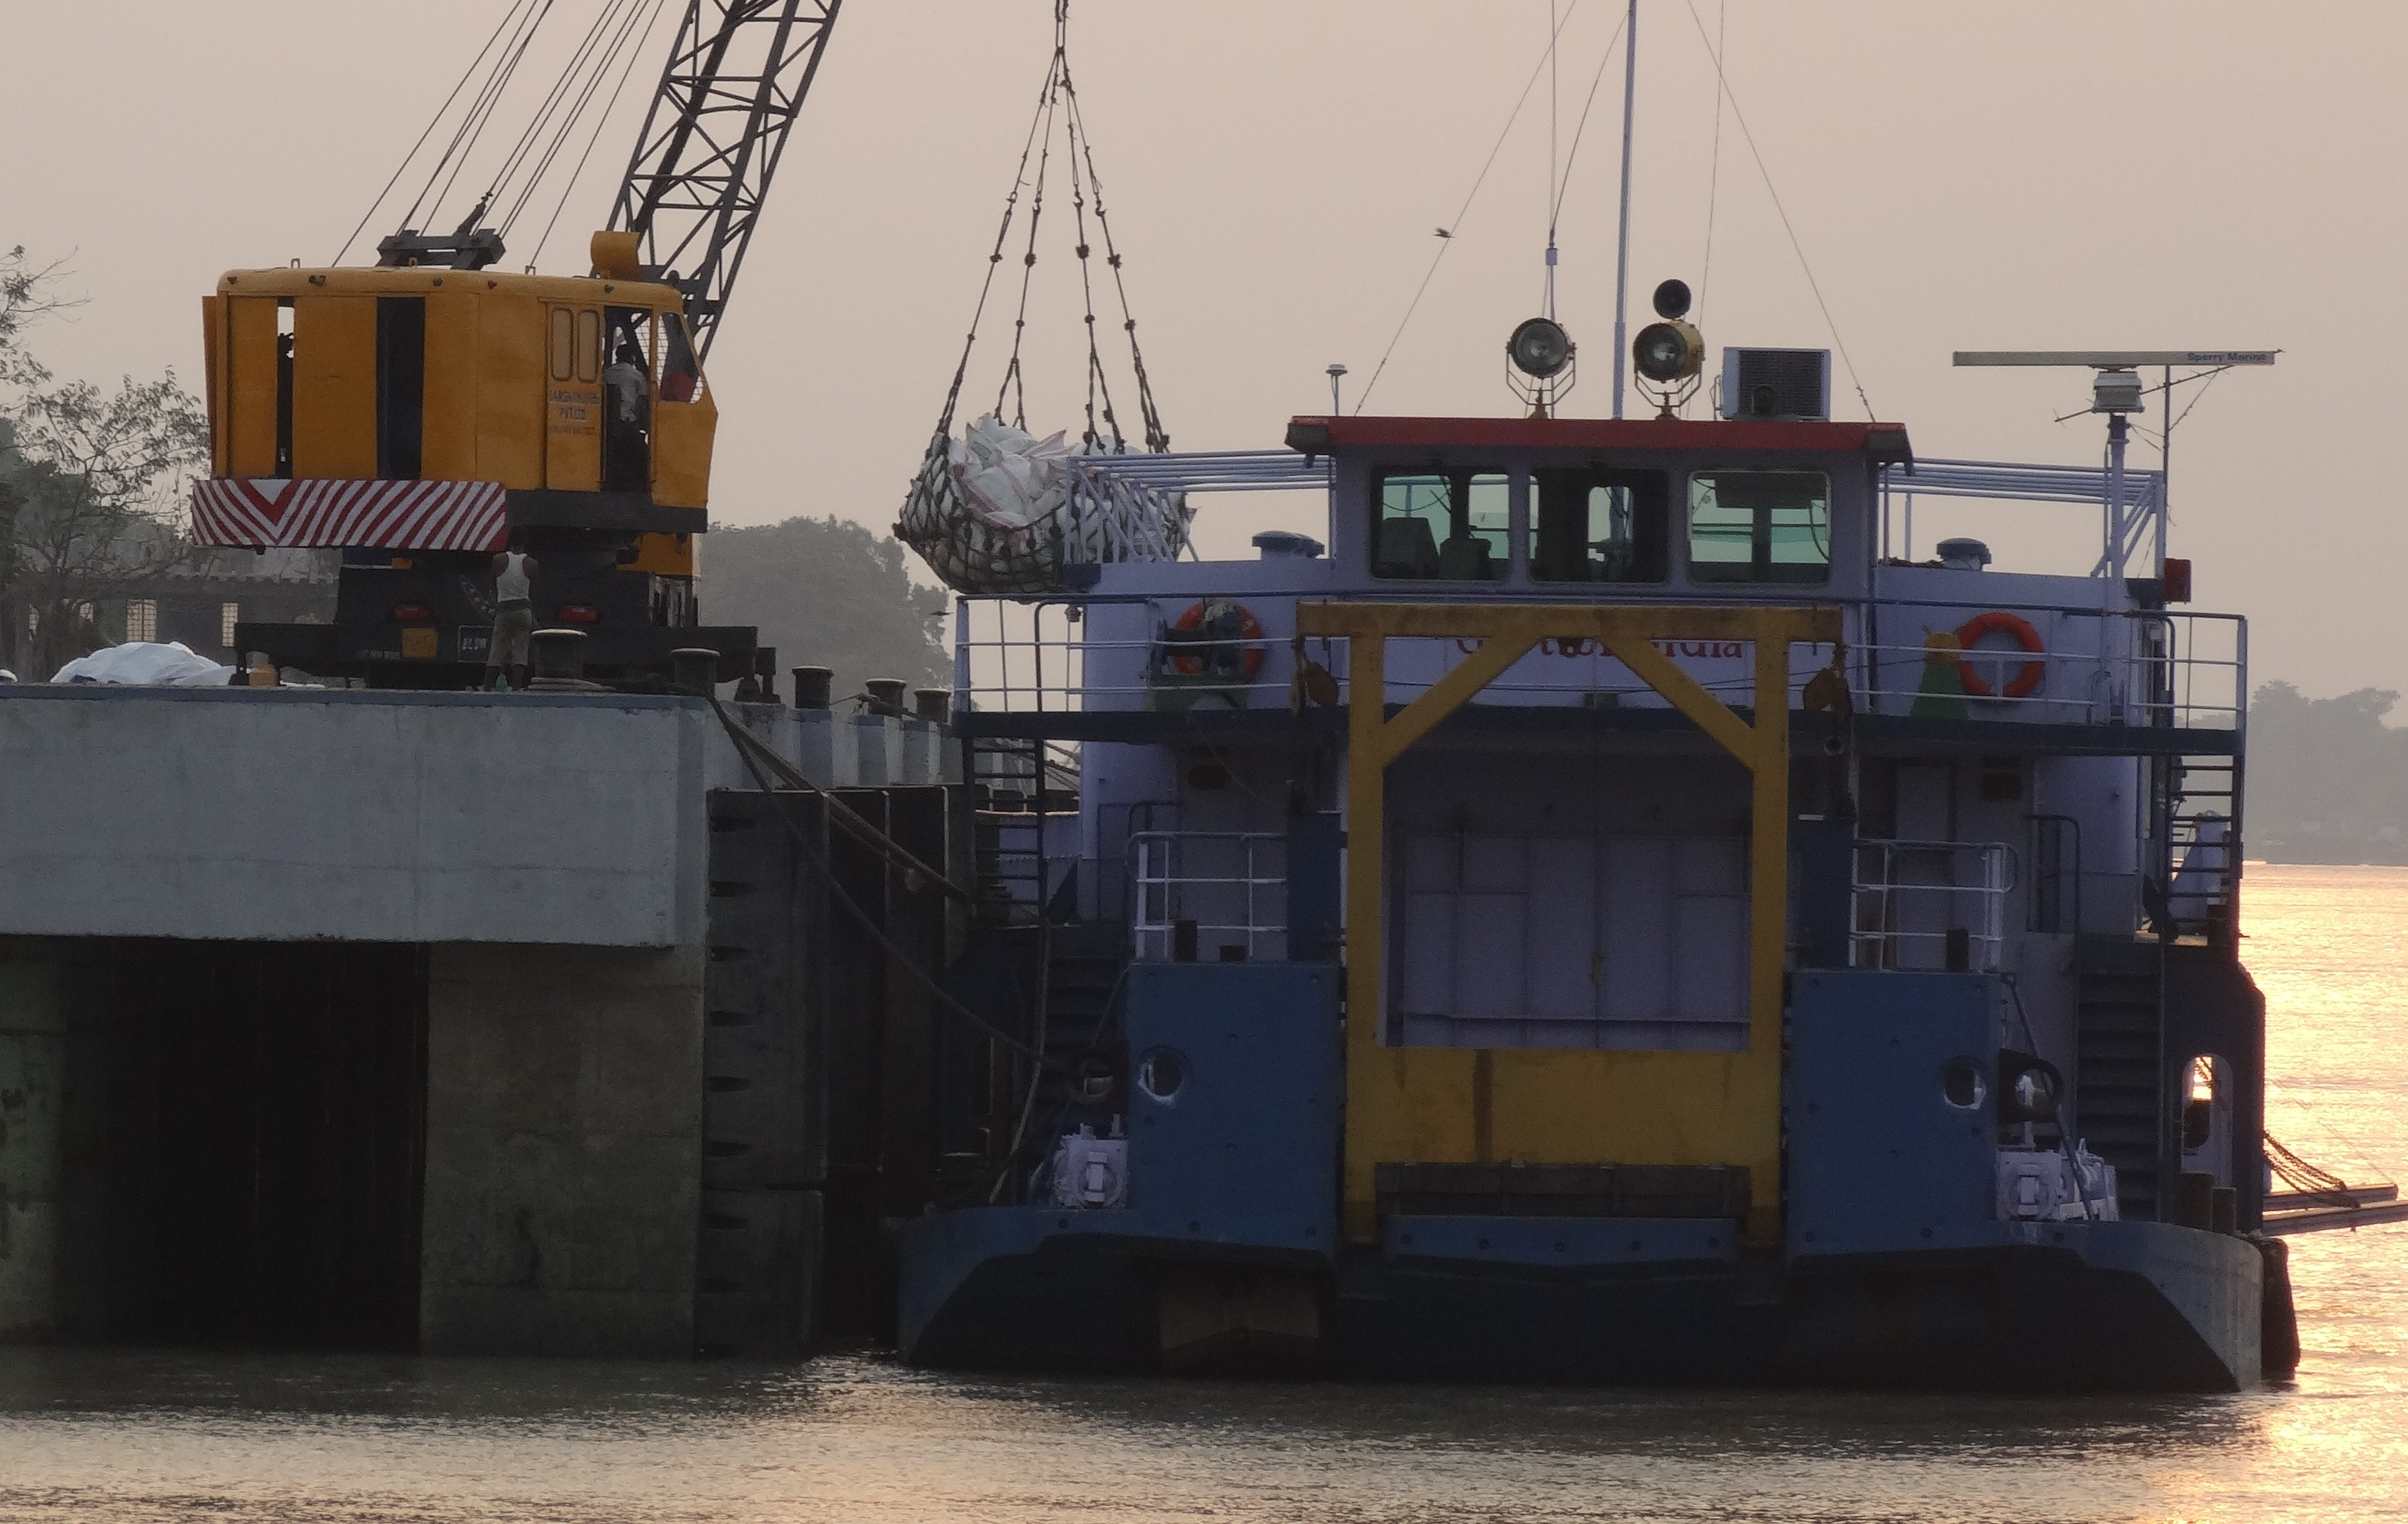 Bihar's capital Patna on board the game-changing container cargo circuit on Inland Waterways